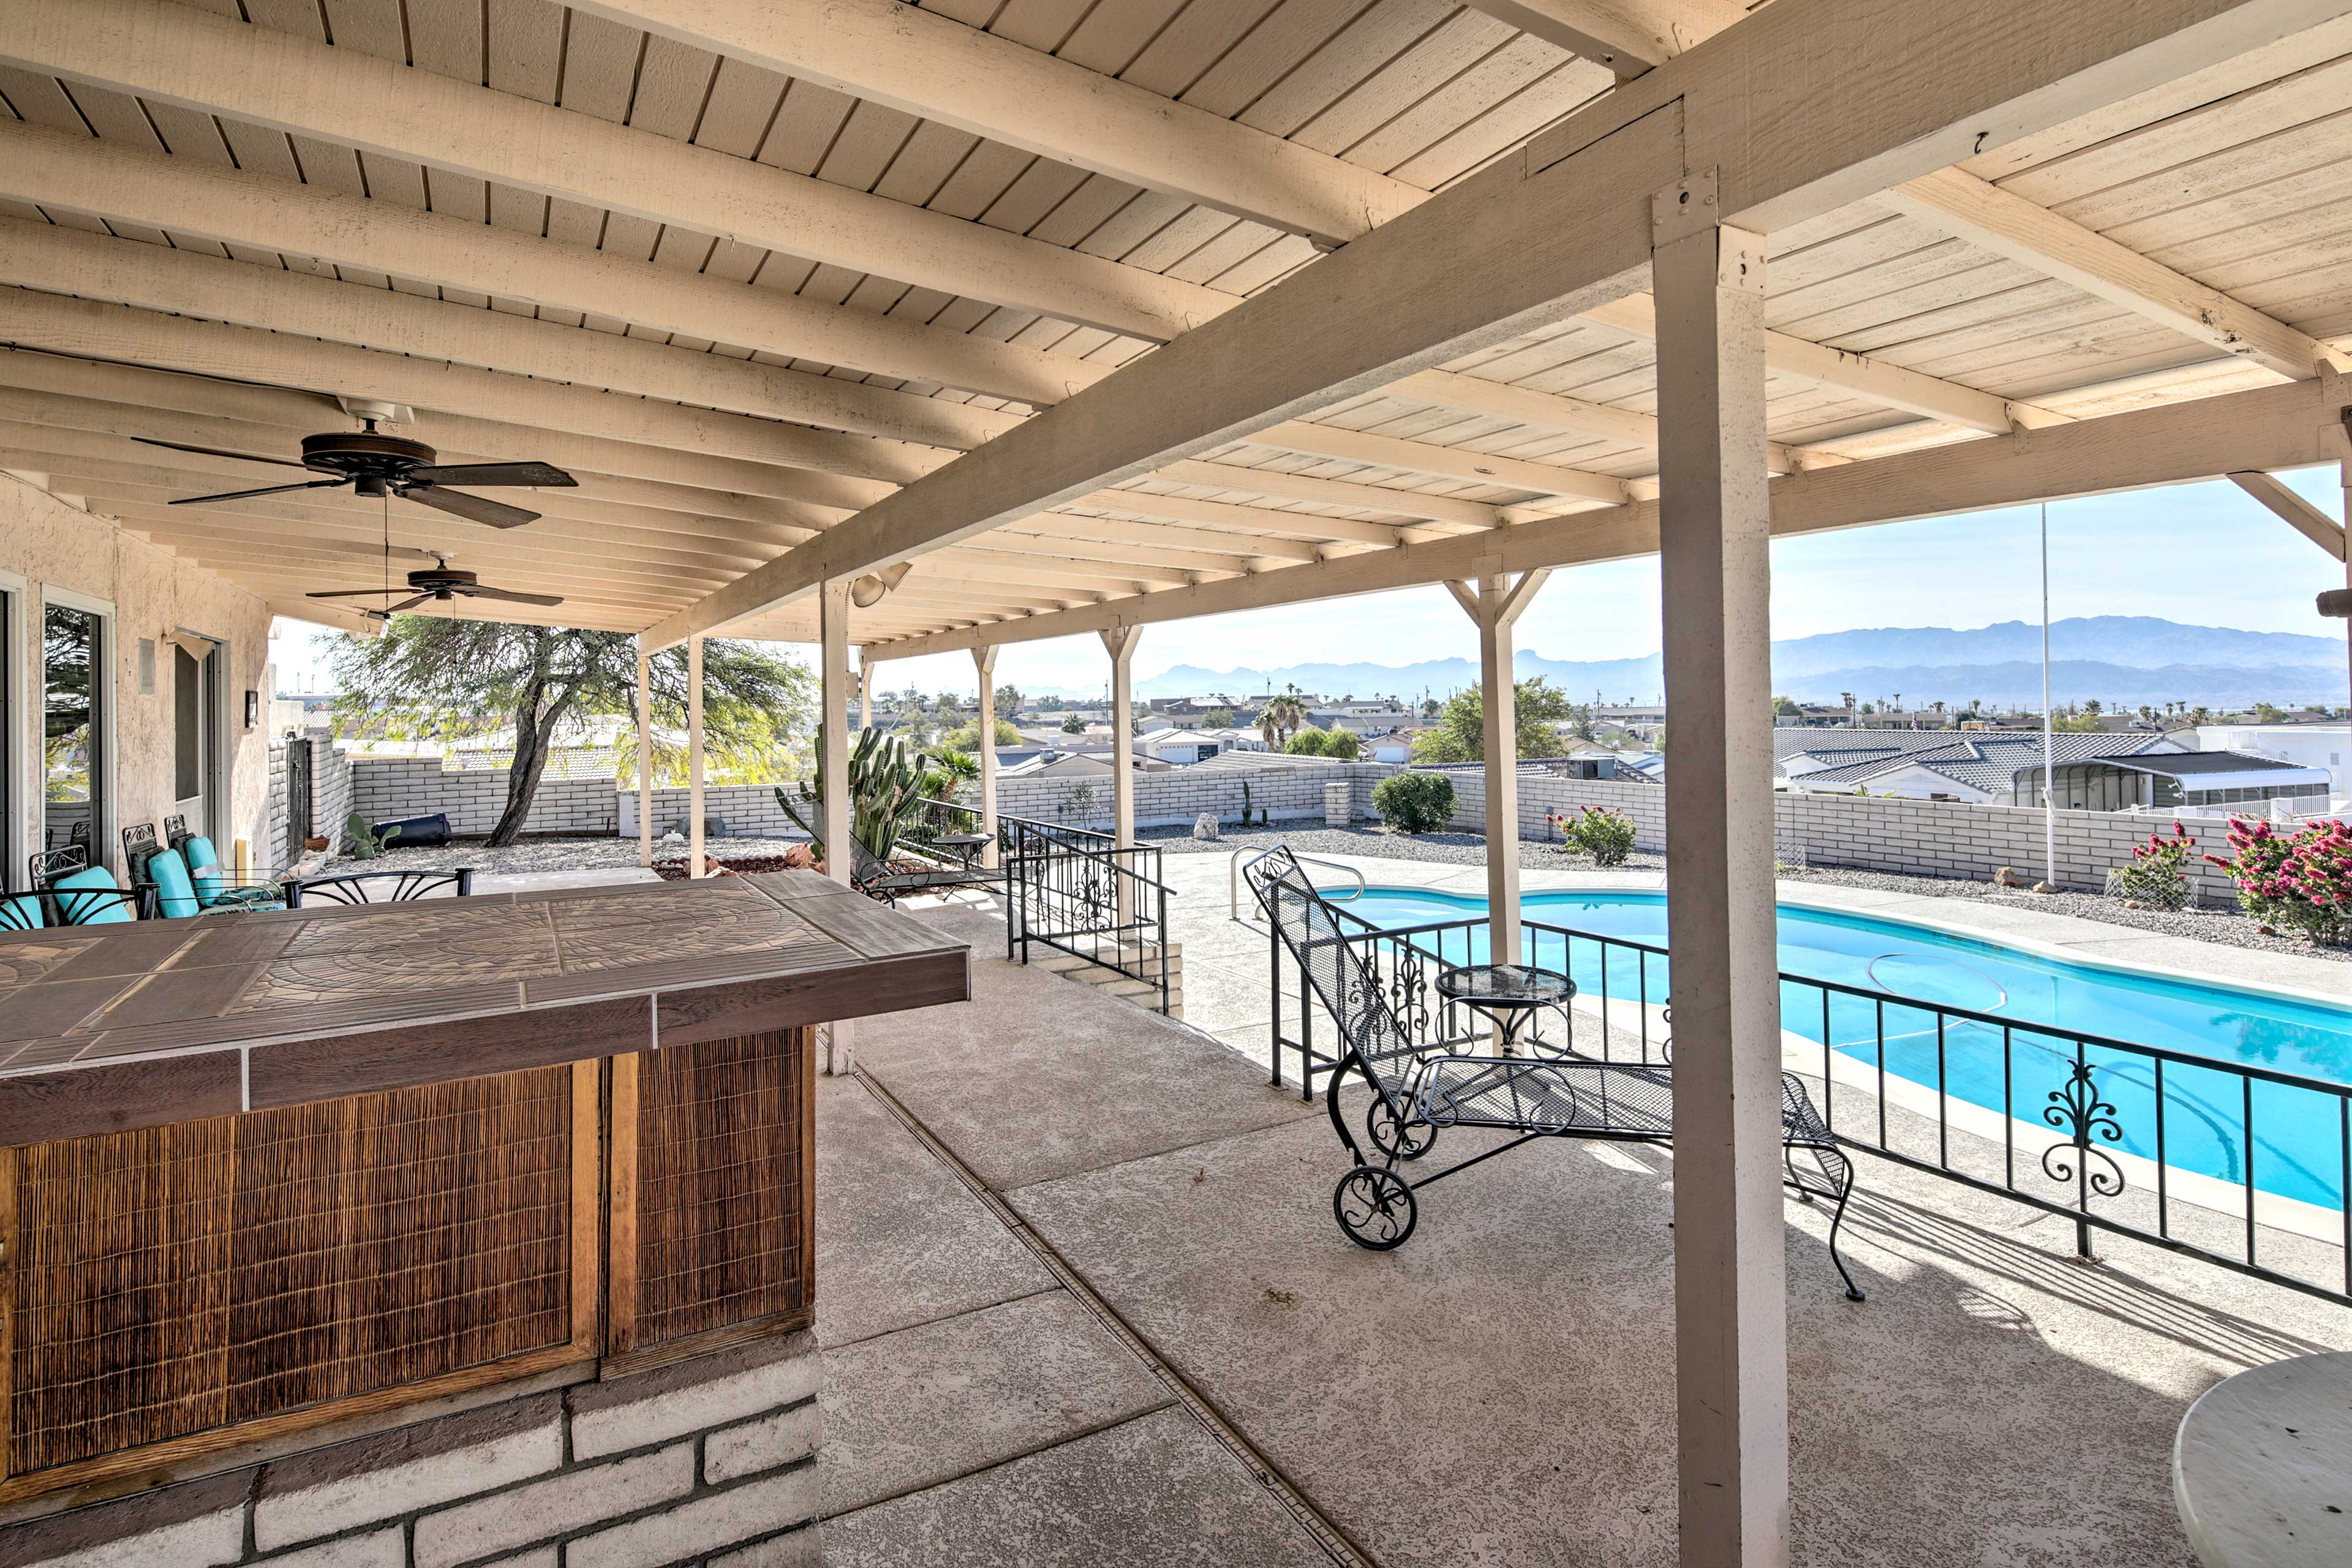 This covered patio is sure to impress with its views and ample seating.